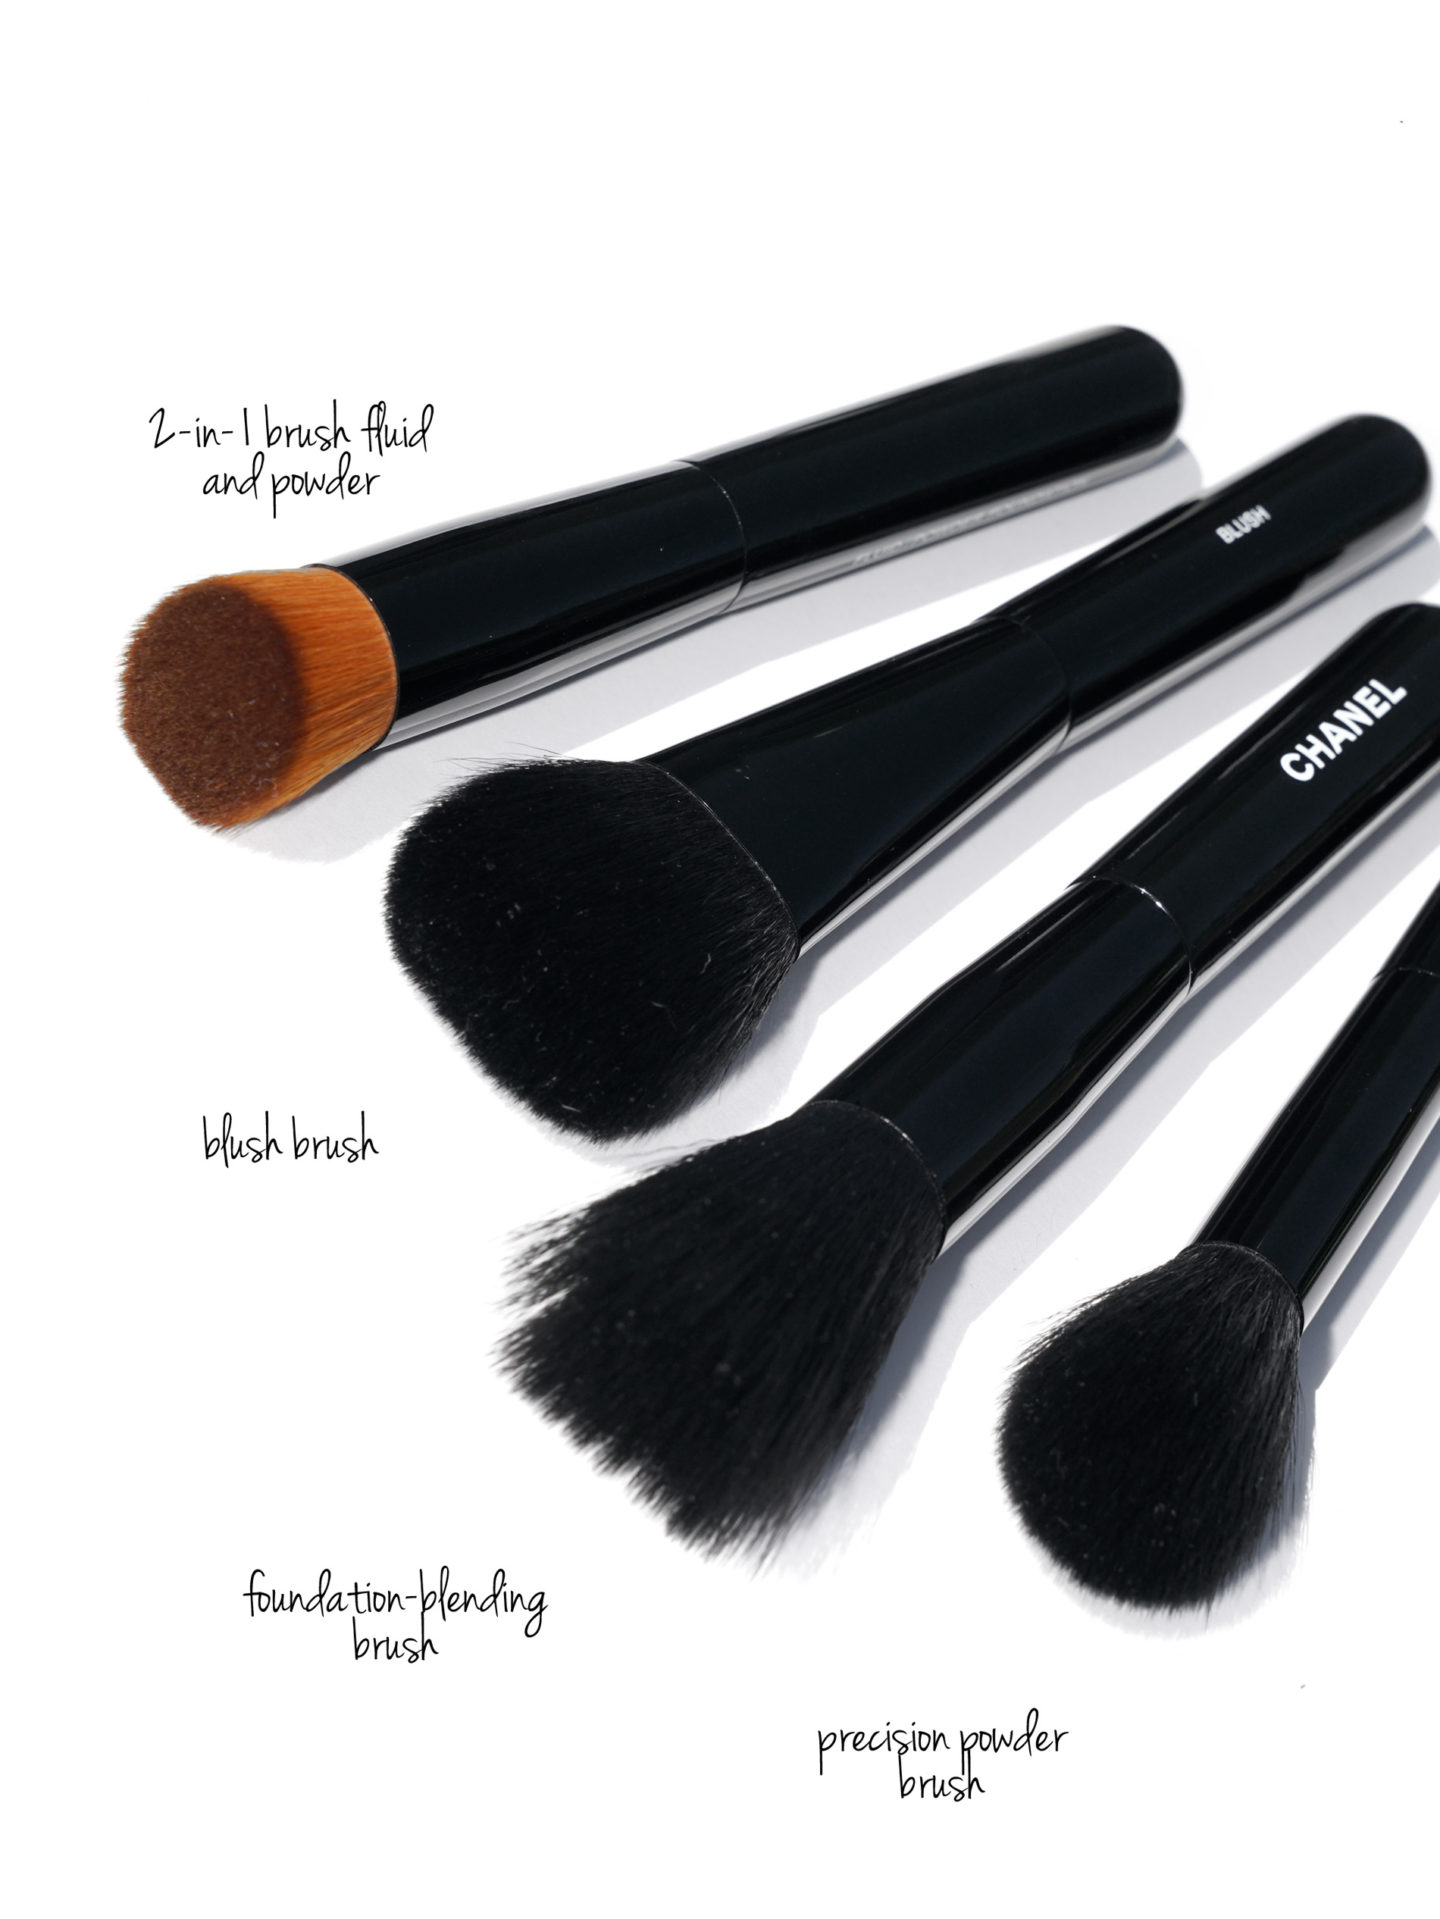 Chanel Makeup Brushes Face and Cheek | The Beauty Look Book